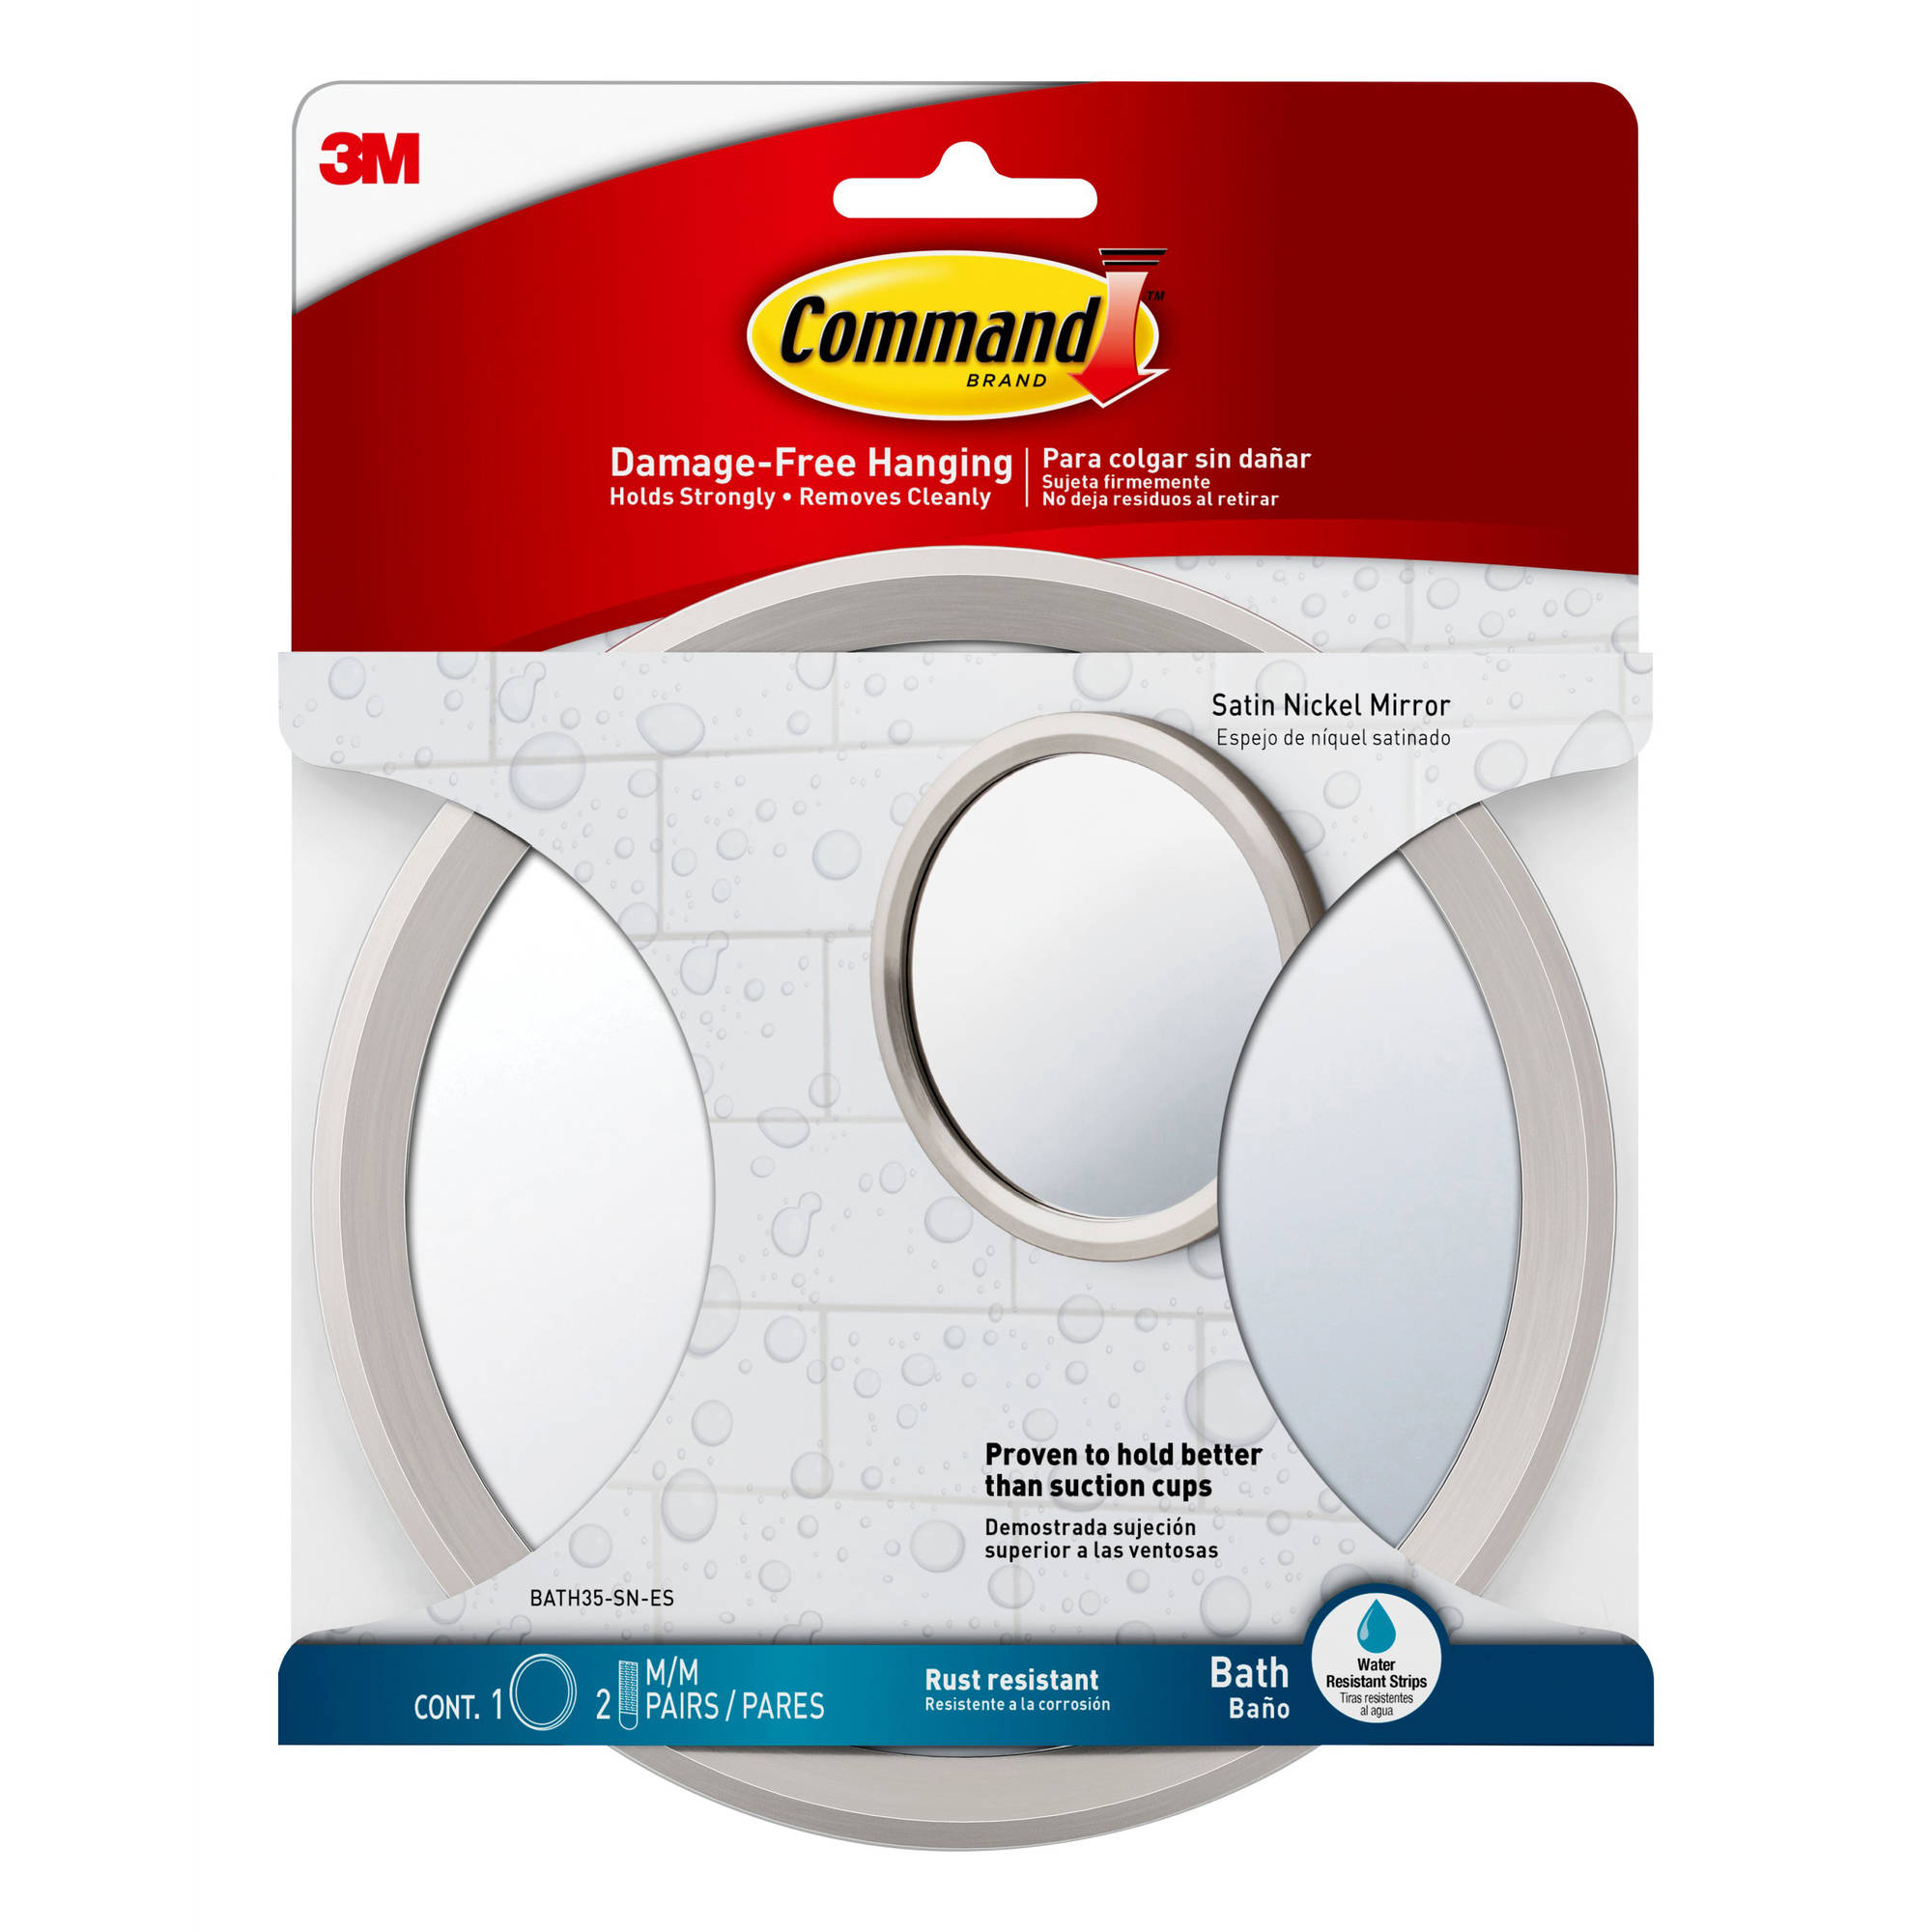 Command Bath Mirror, Satin Nickel, 1 Mirror, 2 Sets of Medium Water-Resistant Strips by 3M